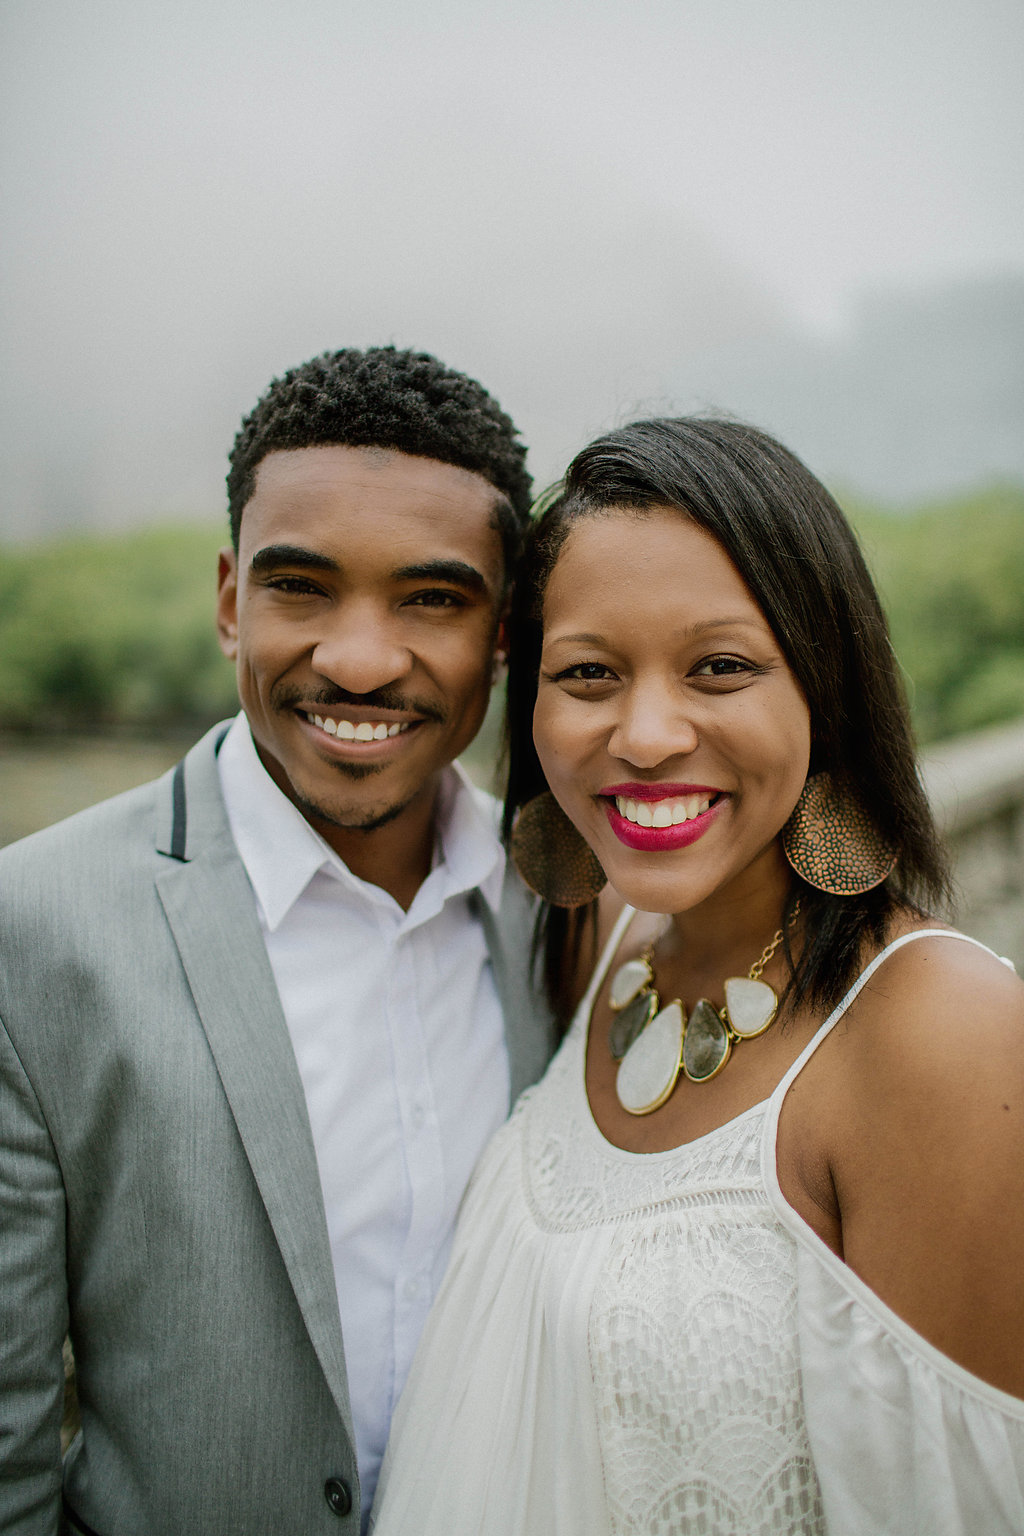 How Jamal and Natasha Miller Went from Food Stamps to Building a Multimillion-Dollar Company in Less Than Four Years